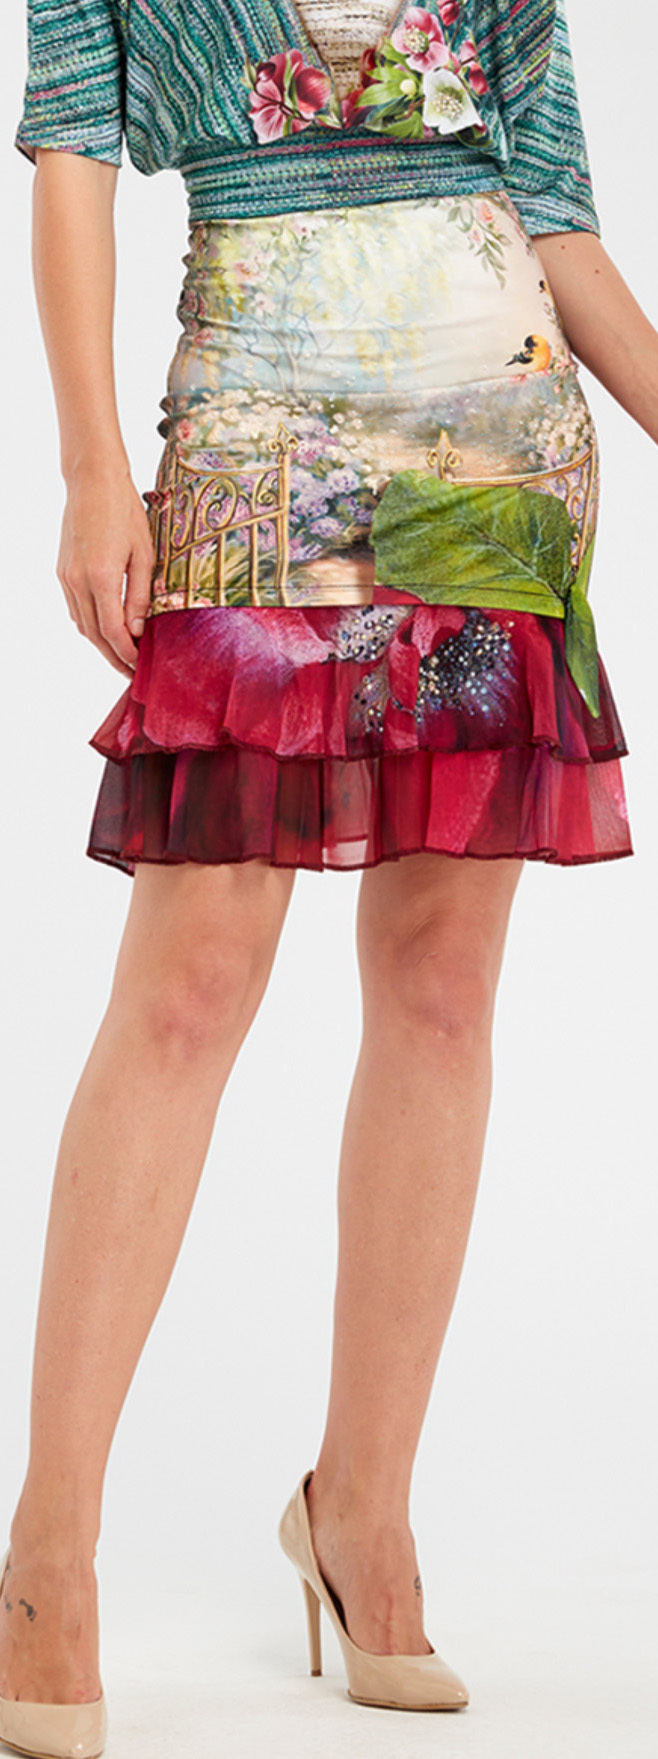 IPNG: Cherry Carnation Lace 3D Illusion Fit & Flare Mini Skirt IPNG_IPSKM-072_N